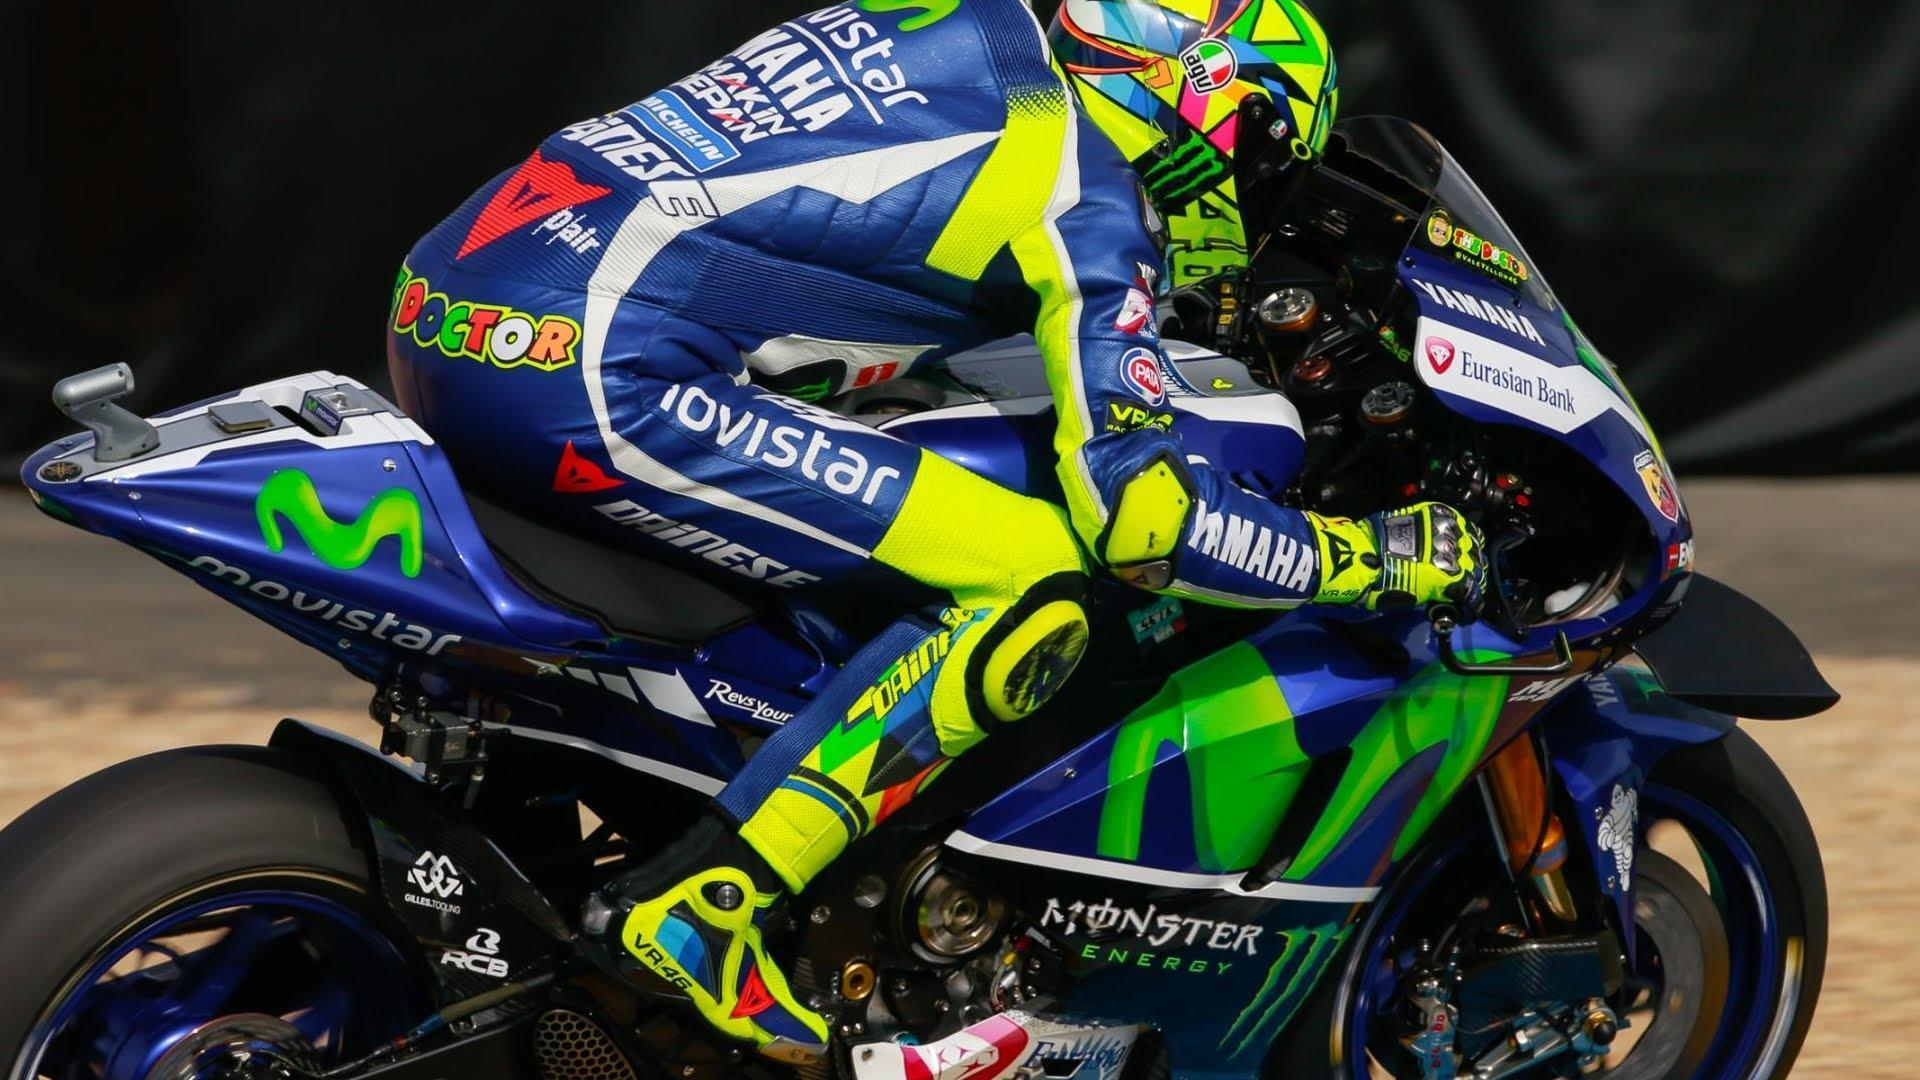 Vr 46 Valentino Rossi | Best Wallpapers